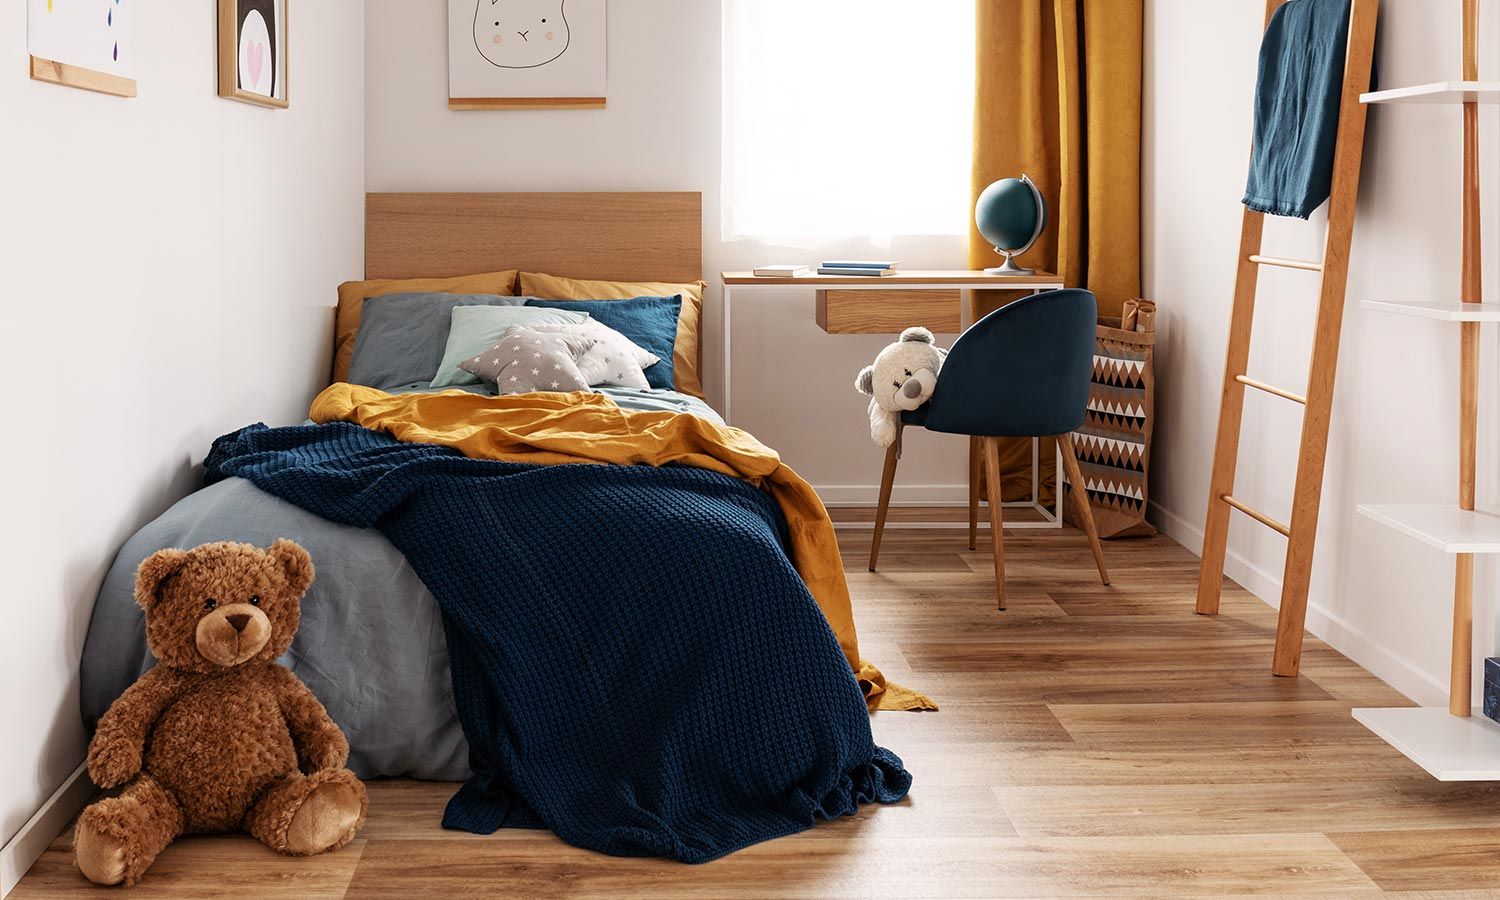 A single bed in a child's room